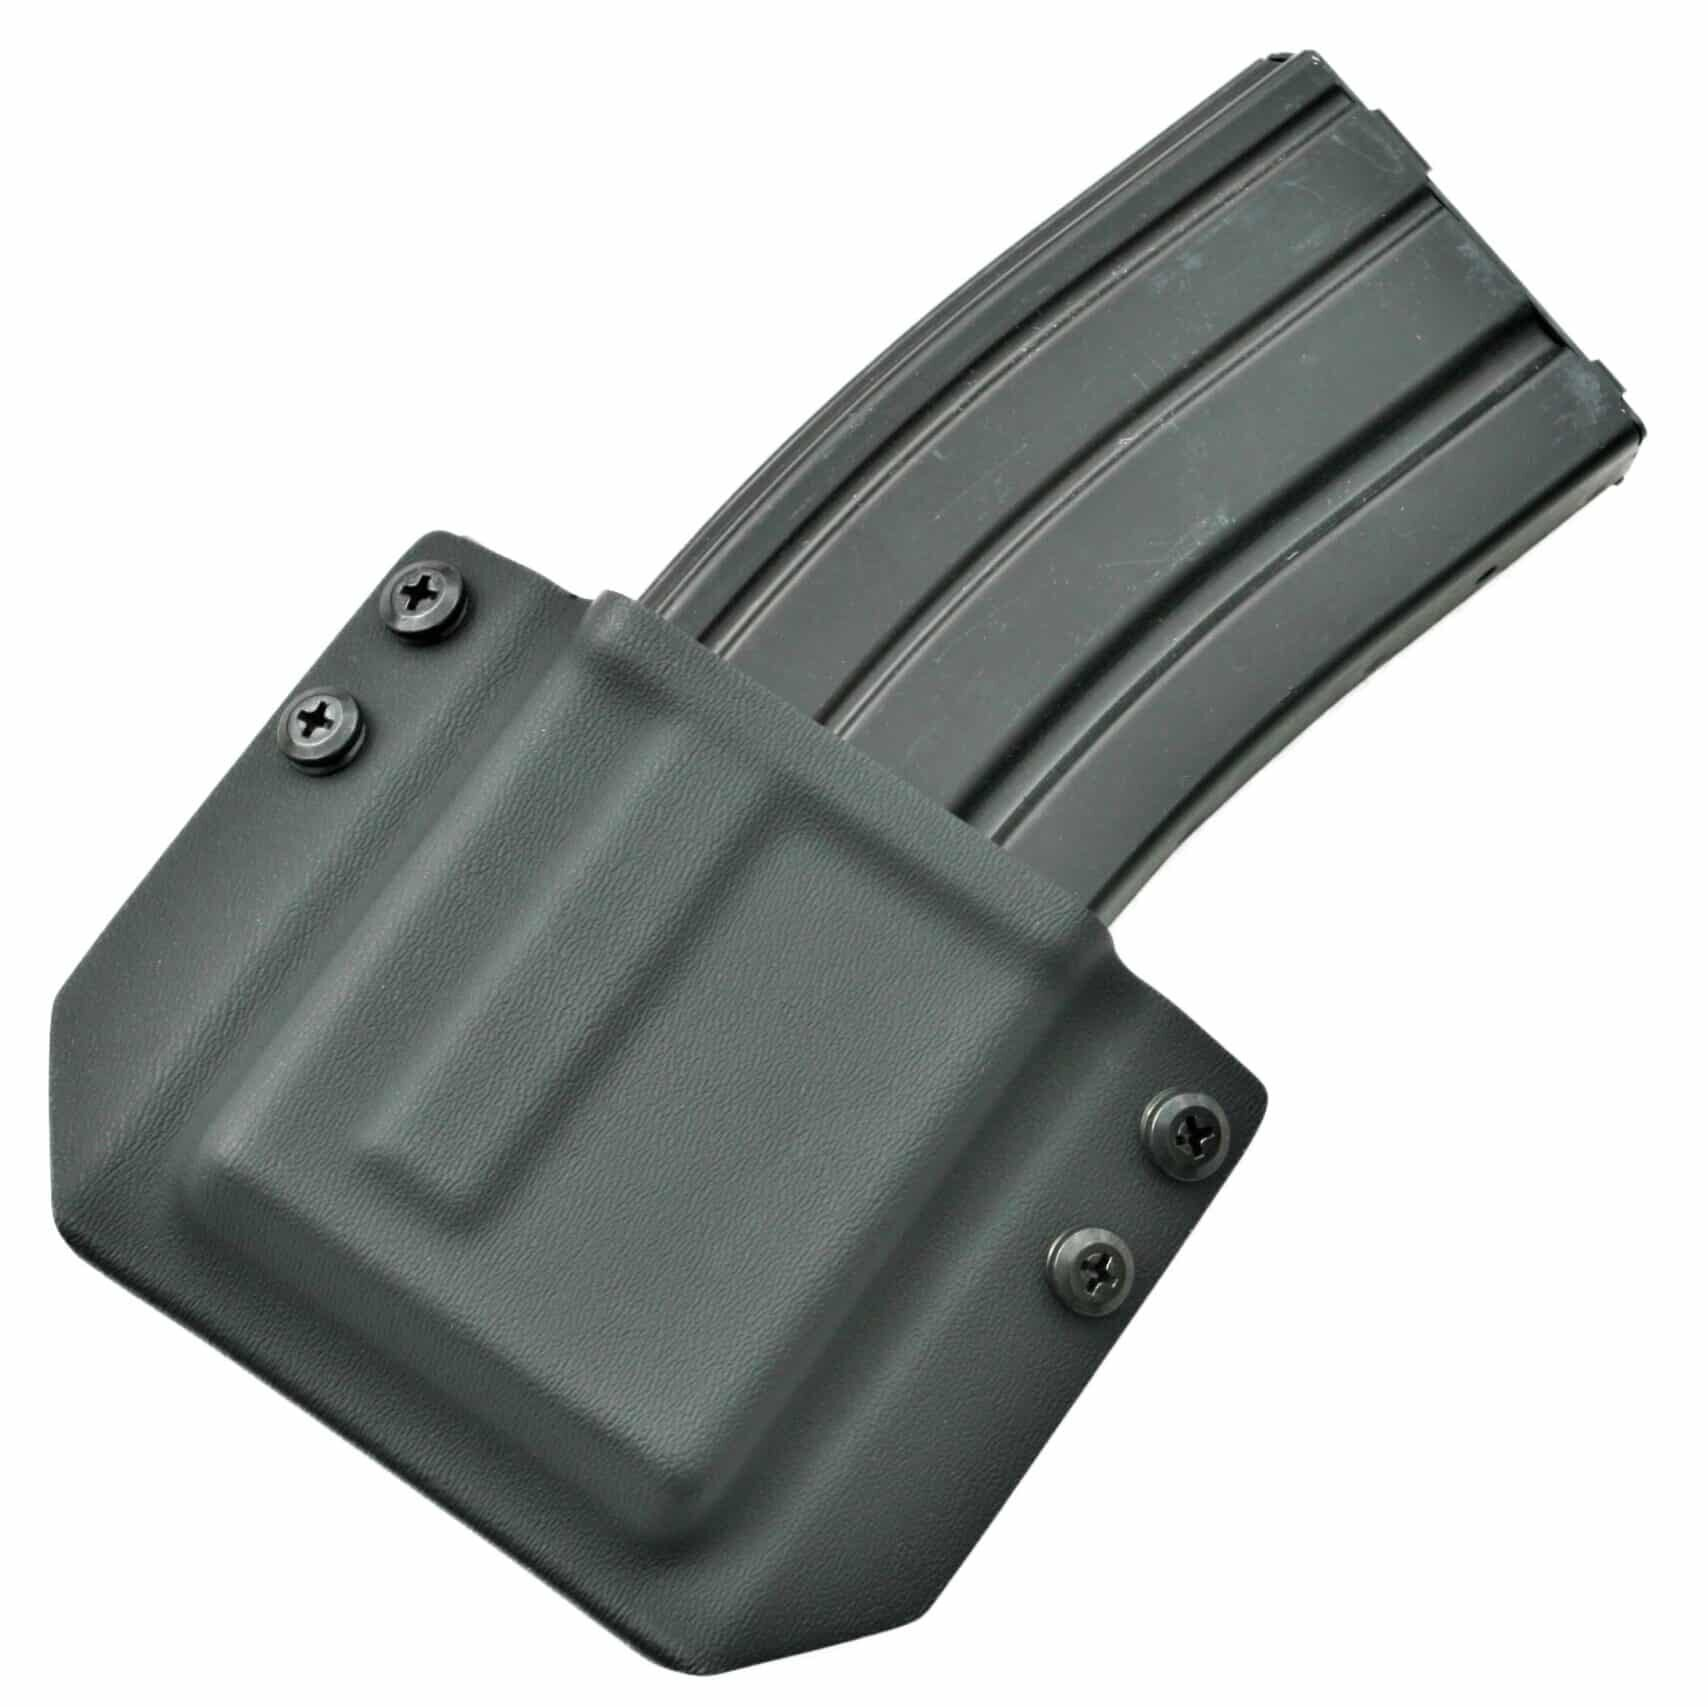 Universal AR-15 mag carrier / pouch